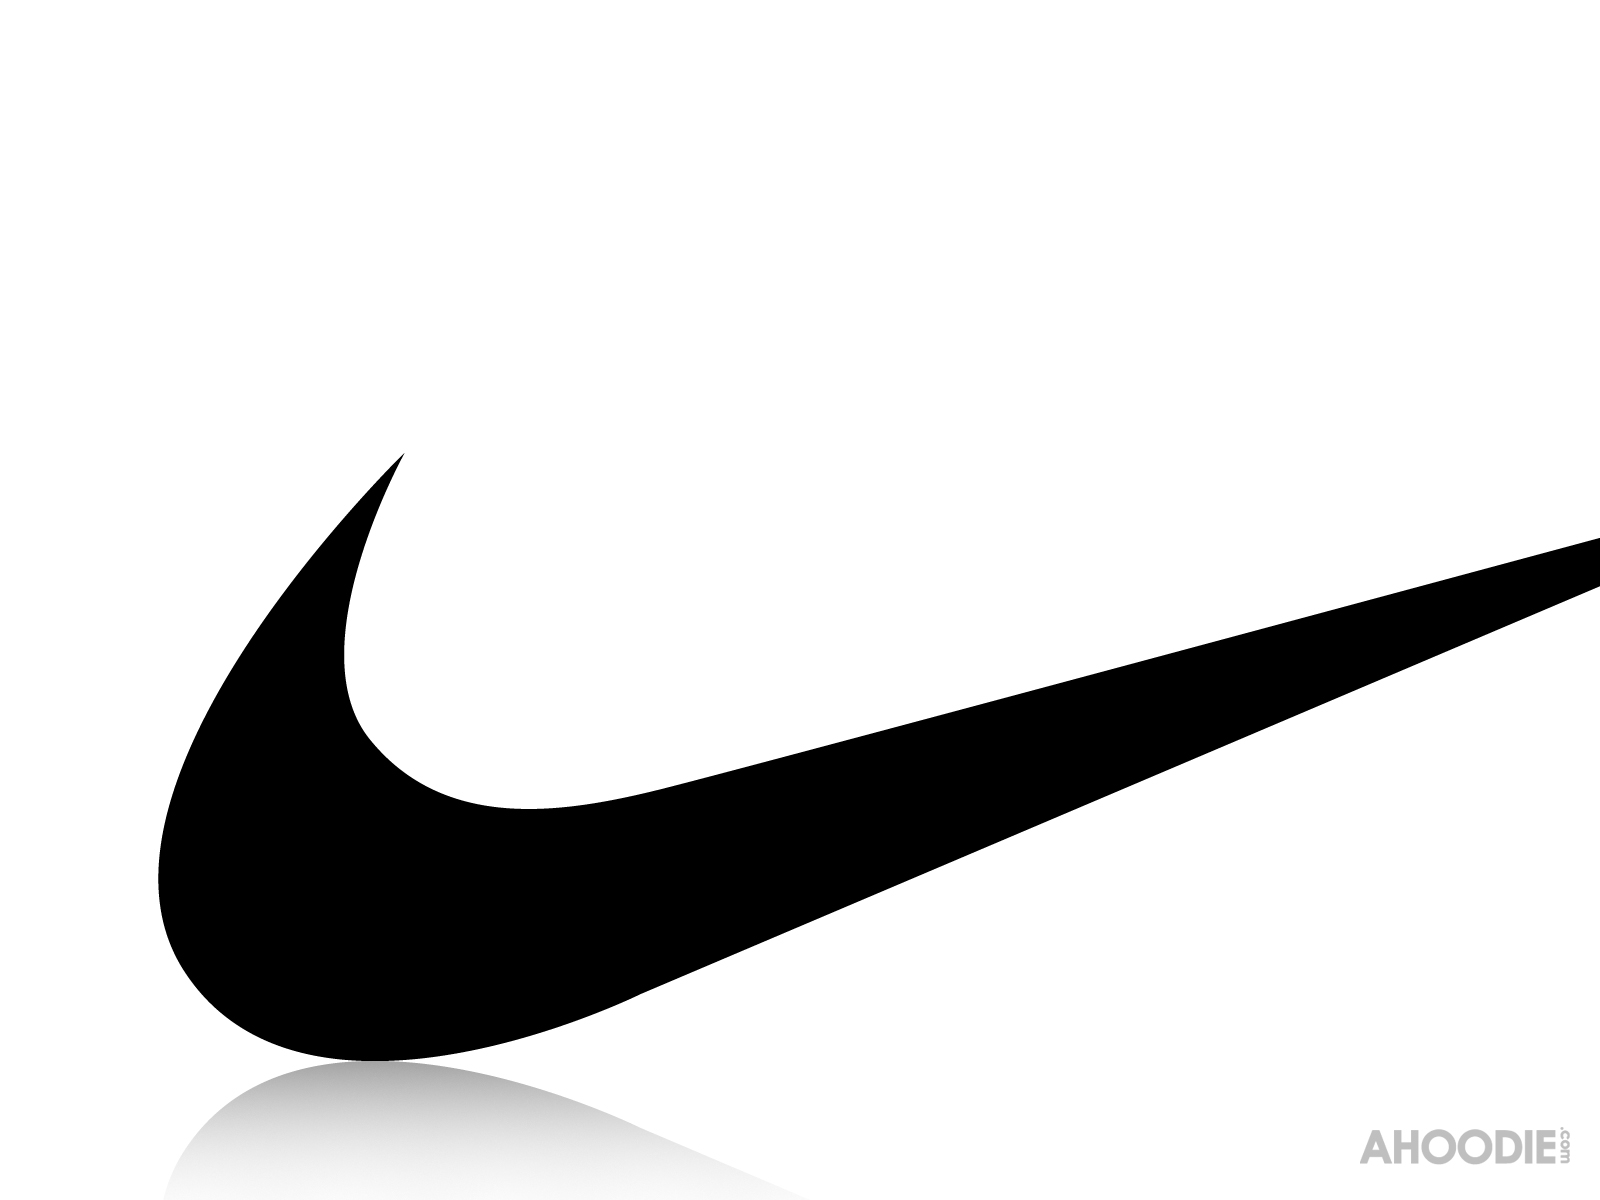 Nike cliparts image download Nike Clipart | Free download best Nike Clipart on ClipArtMag.com image download